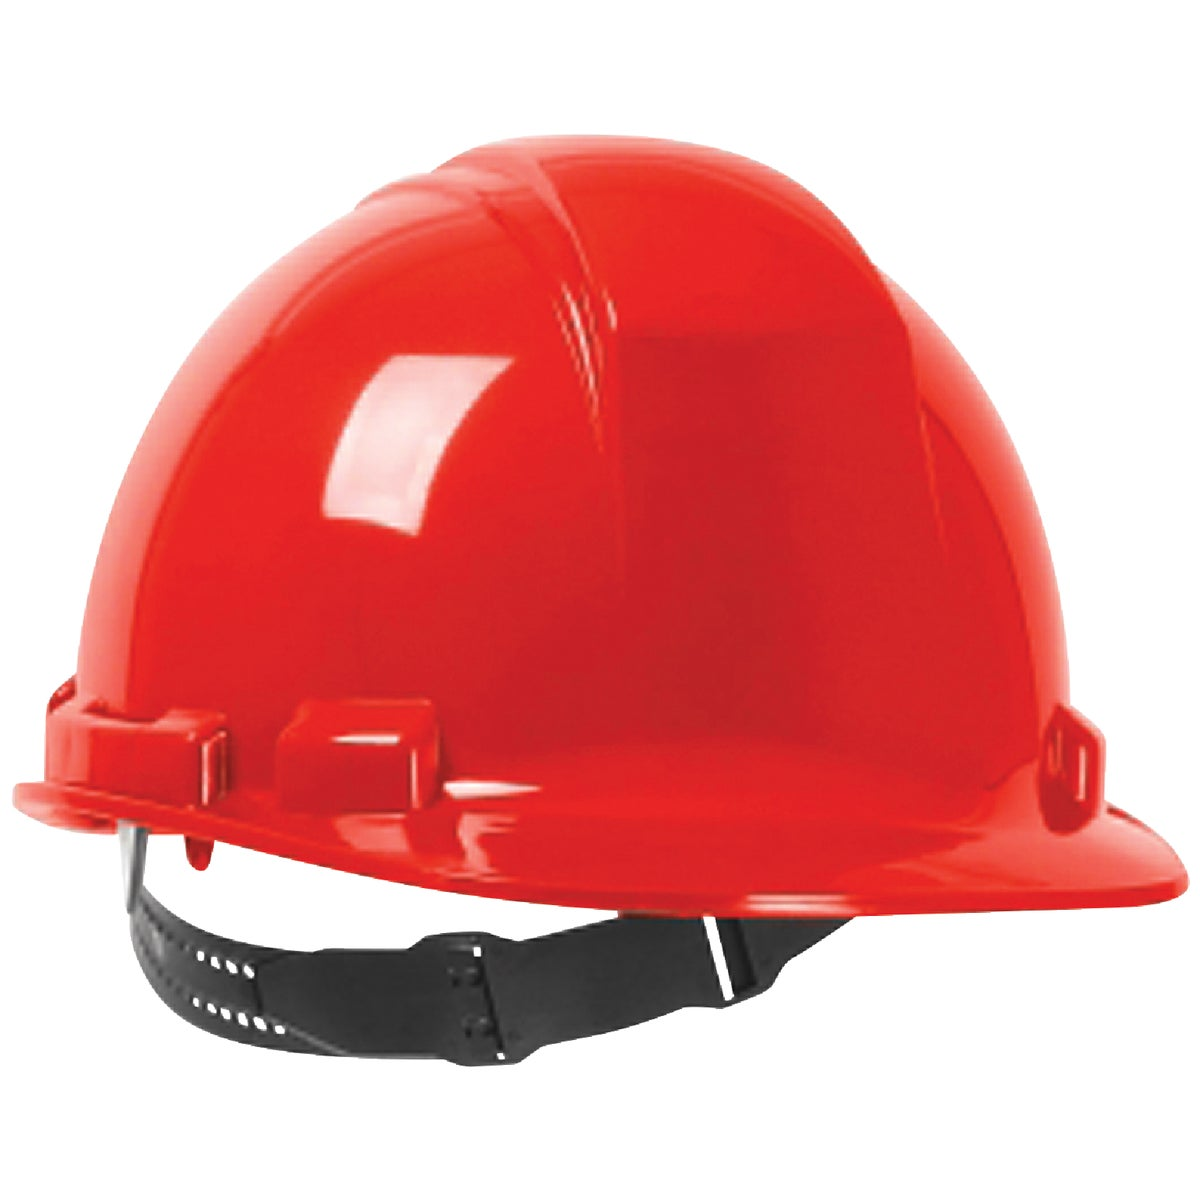 RED HARD HAT - 463947 by Msa Safety